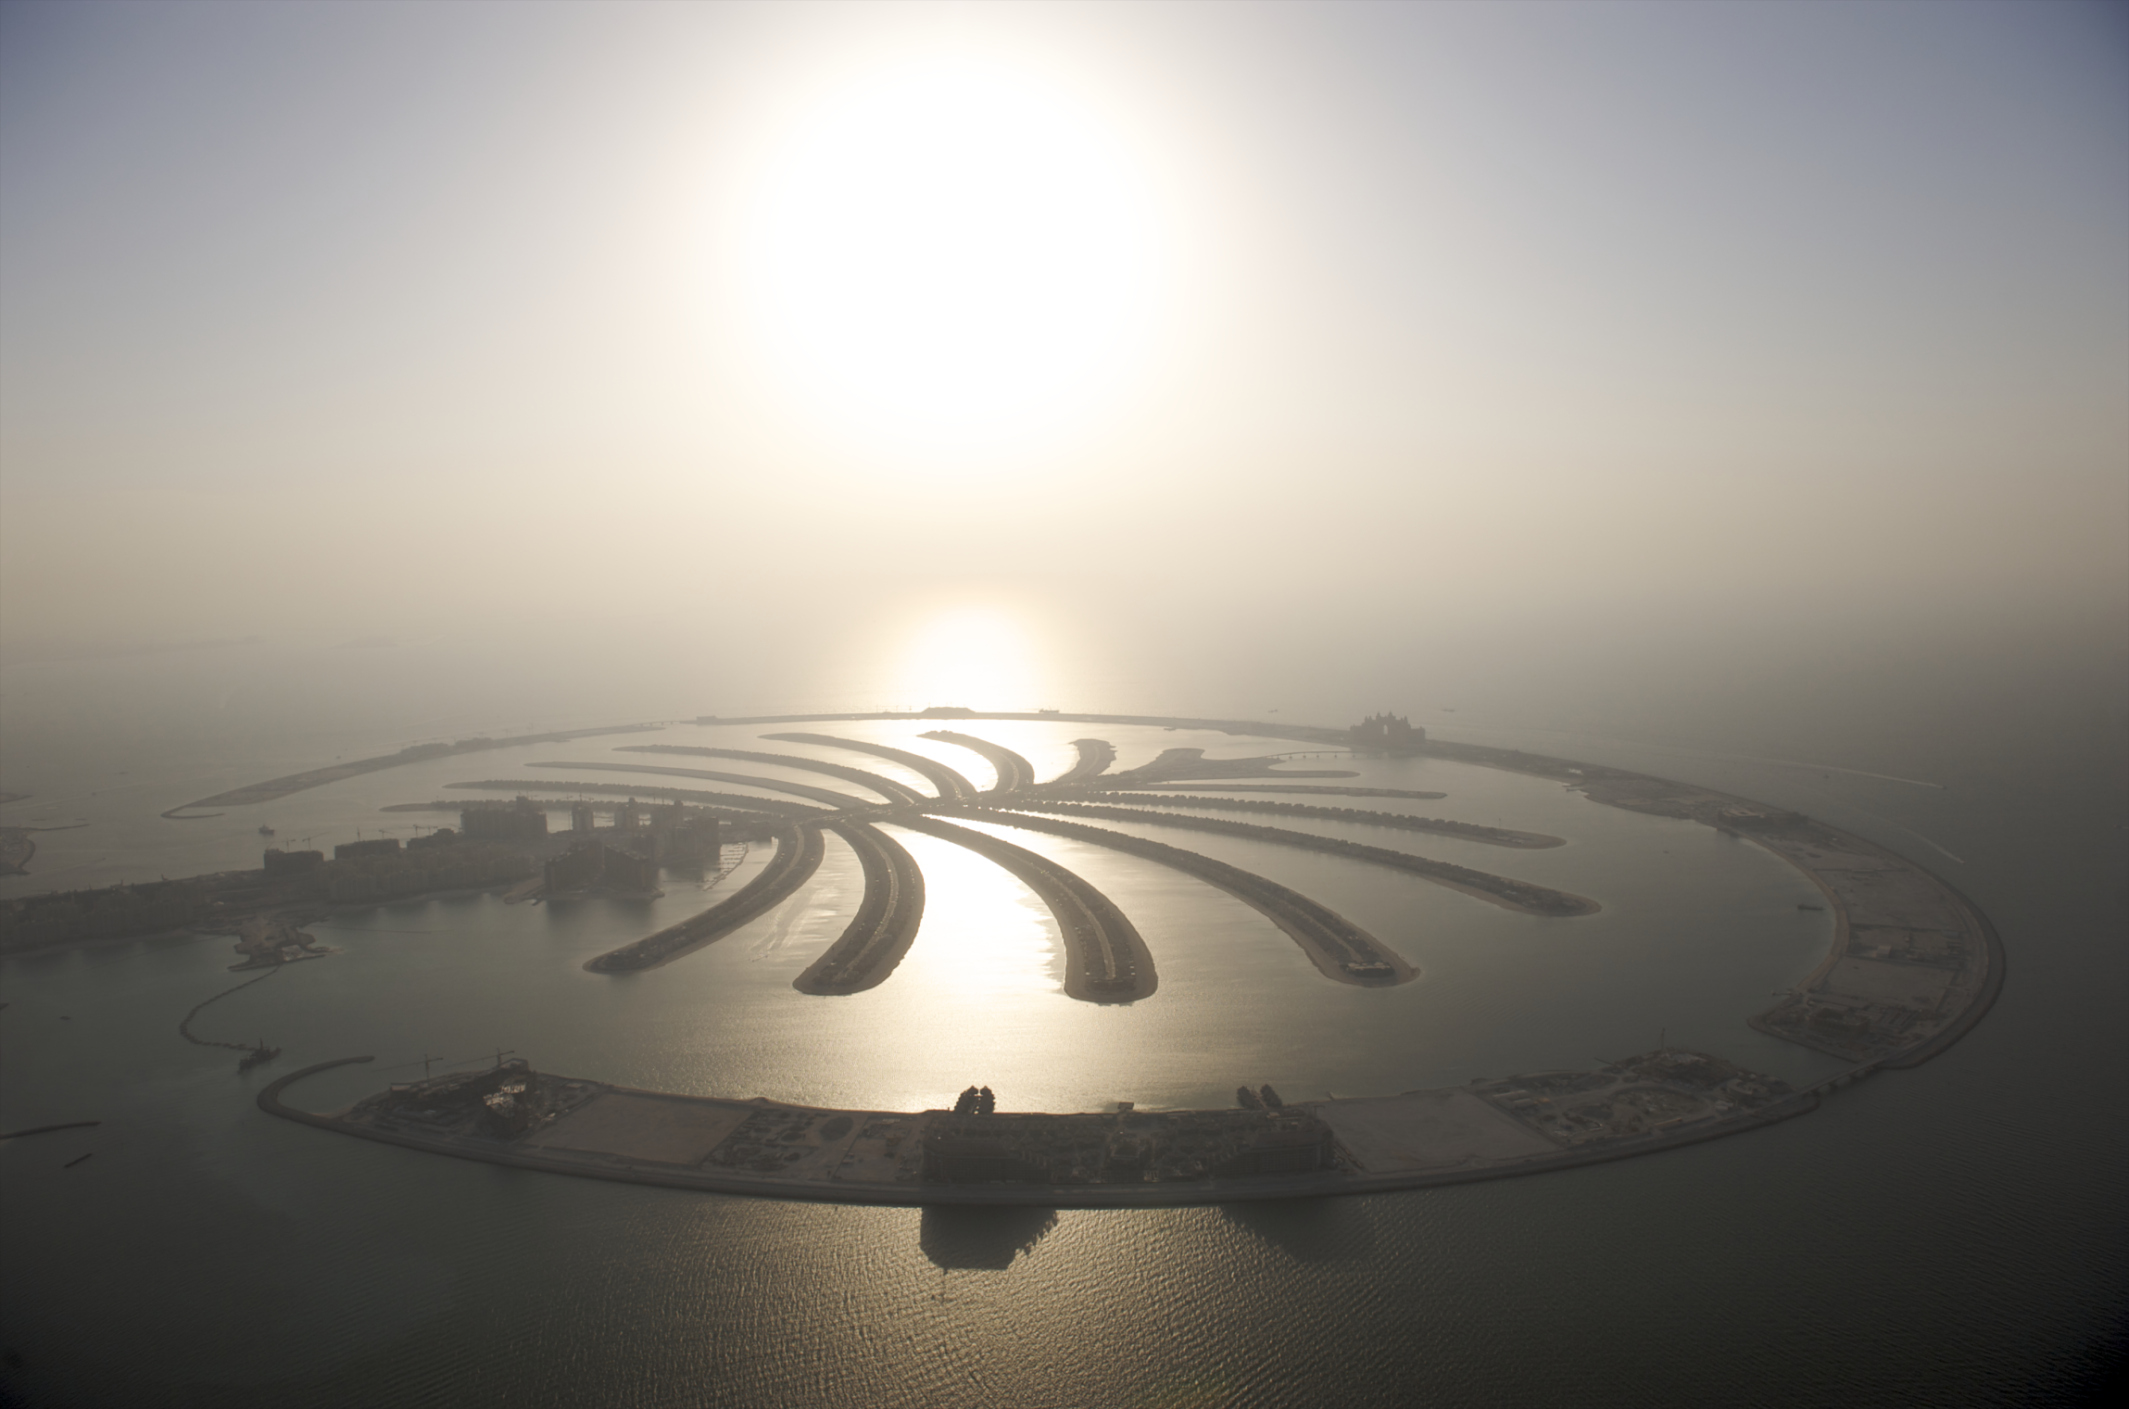 REVEALED: Top Places To Buy Property In Dubai